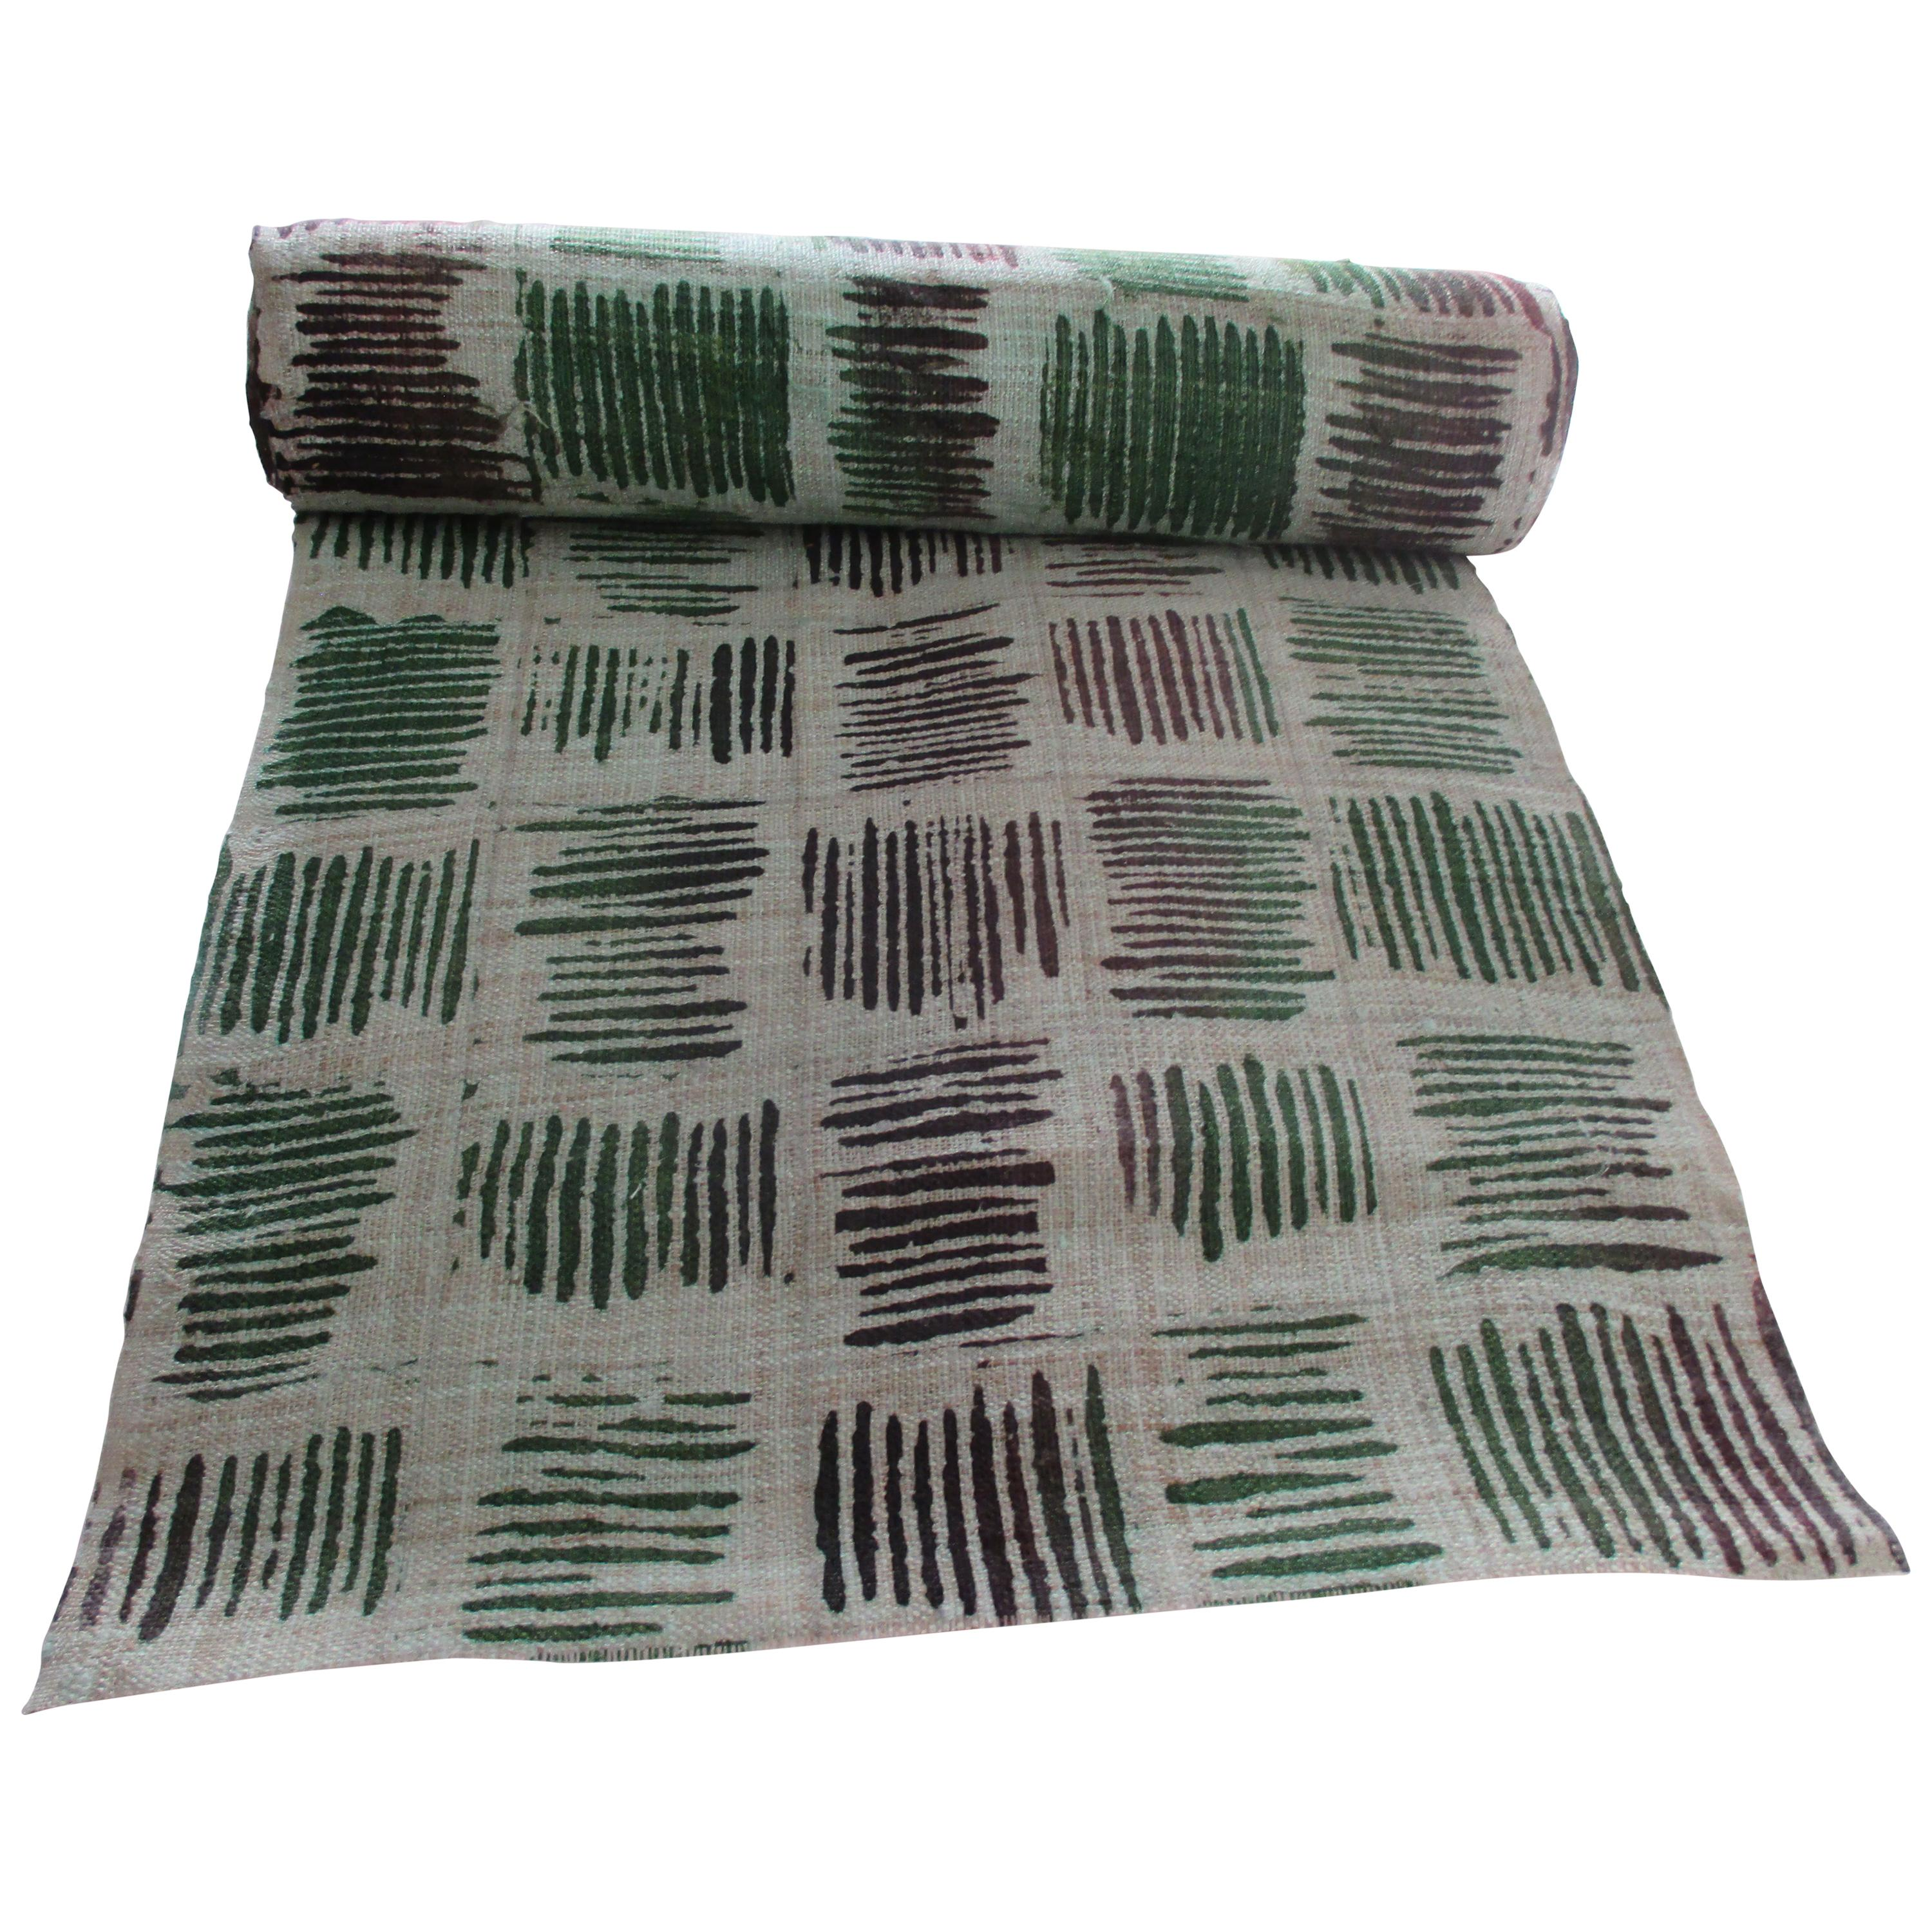 Vintage Green and Black Geometric Pattern Textile Roll